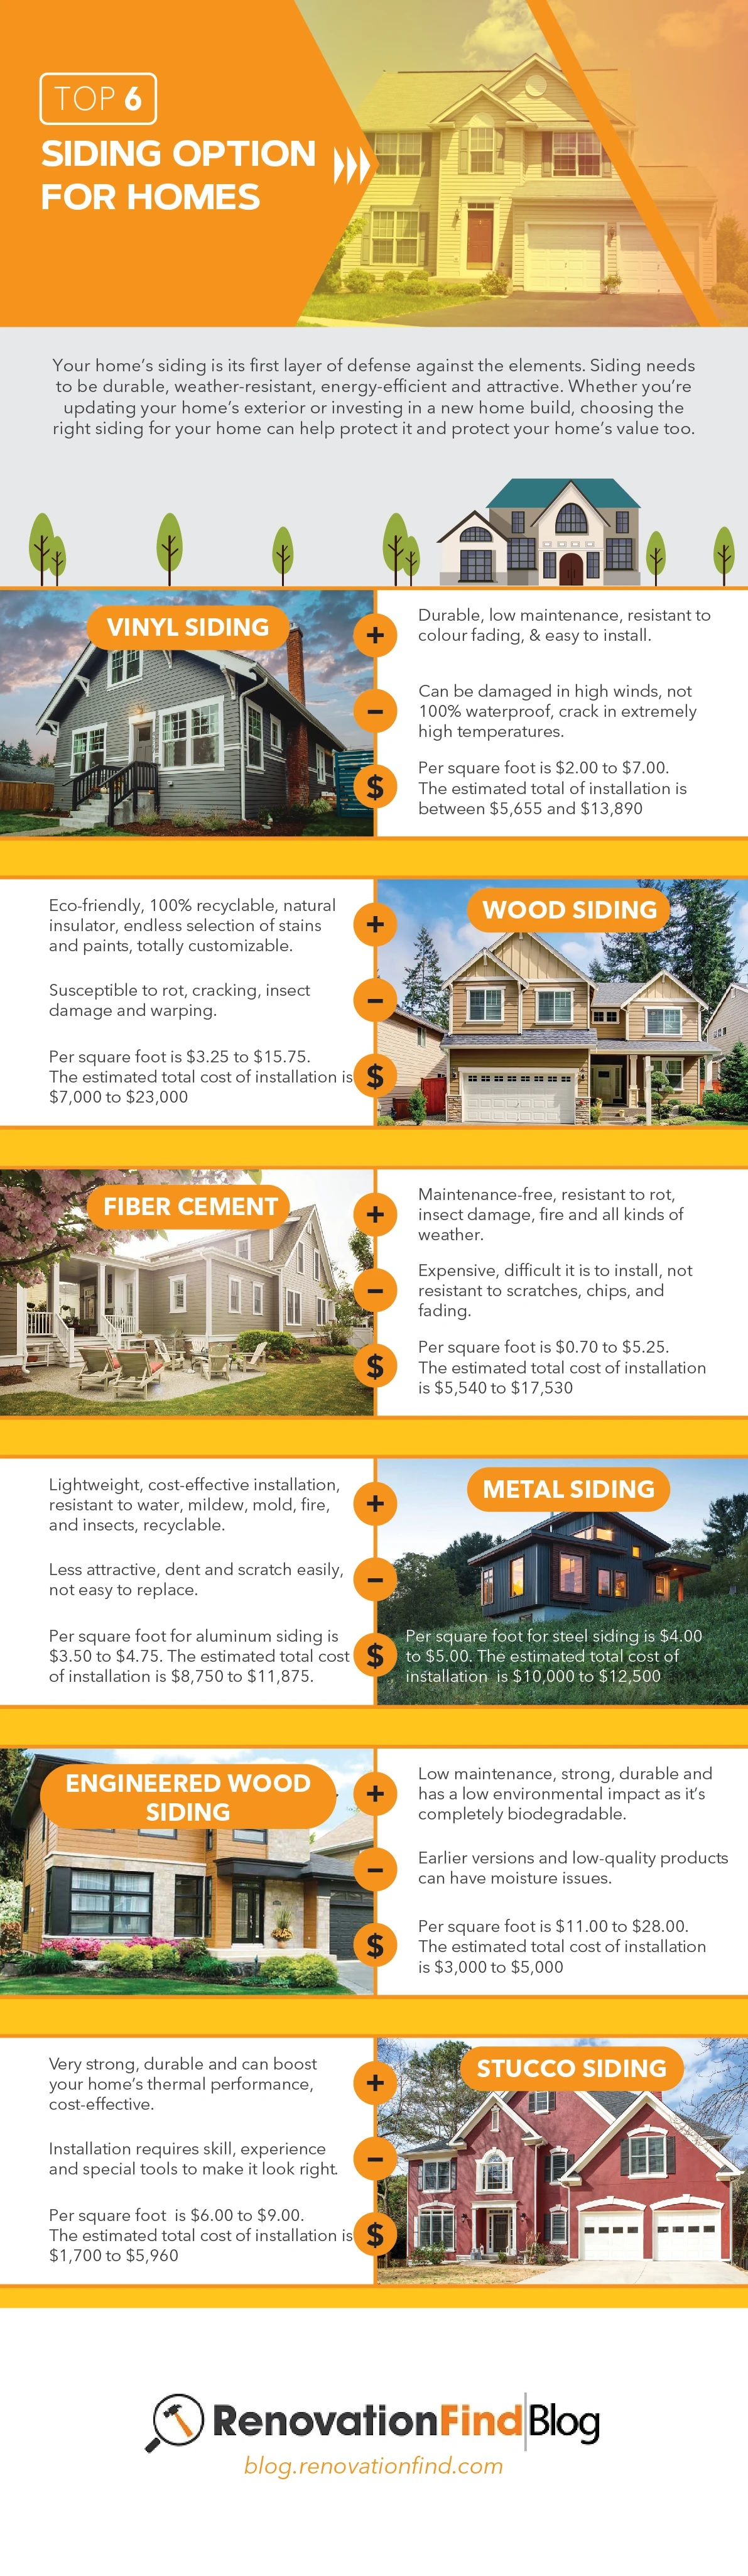 Top 6 Siding Options For Homes